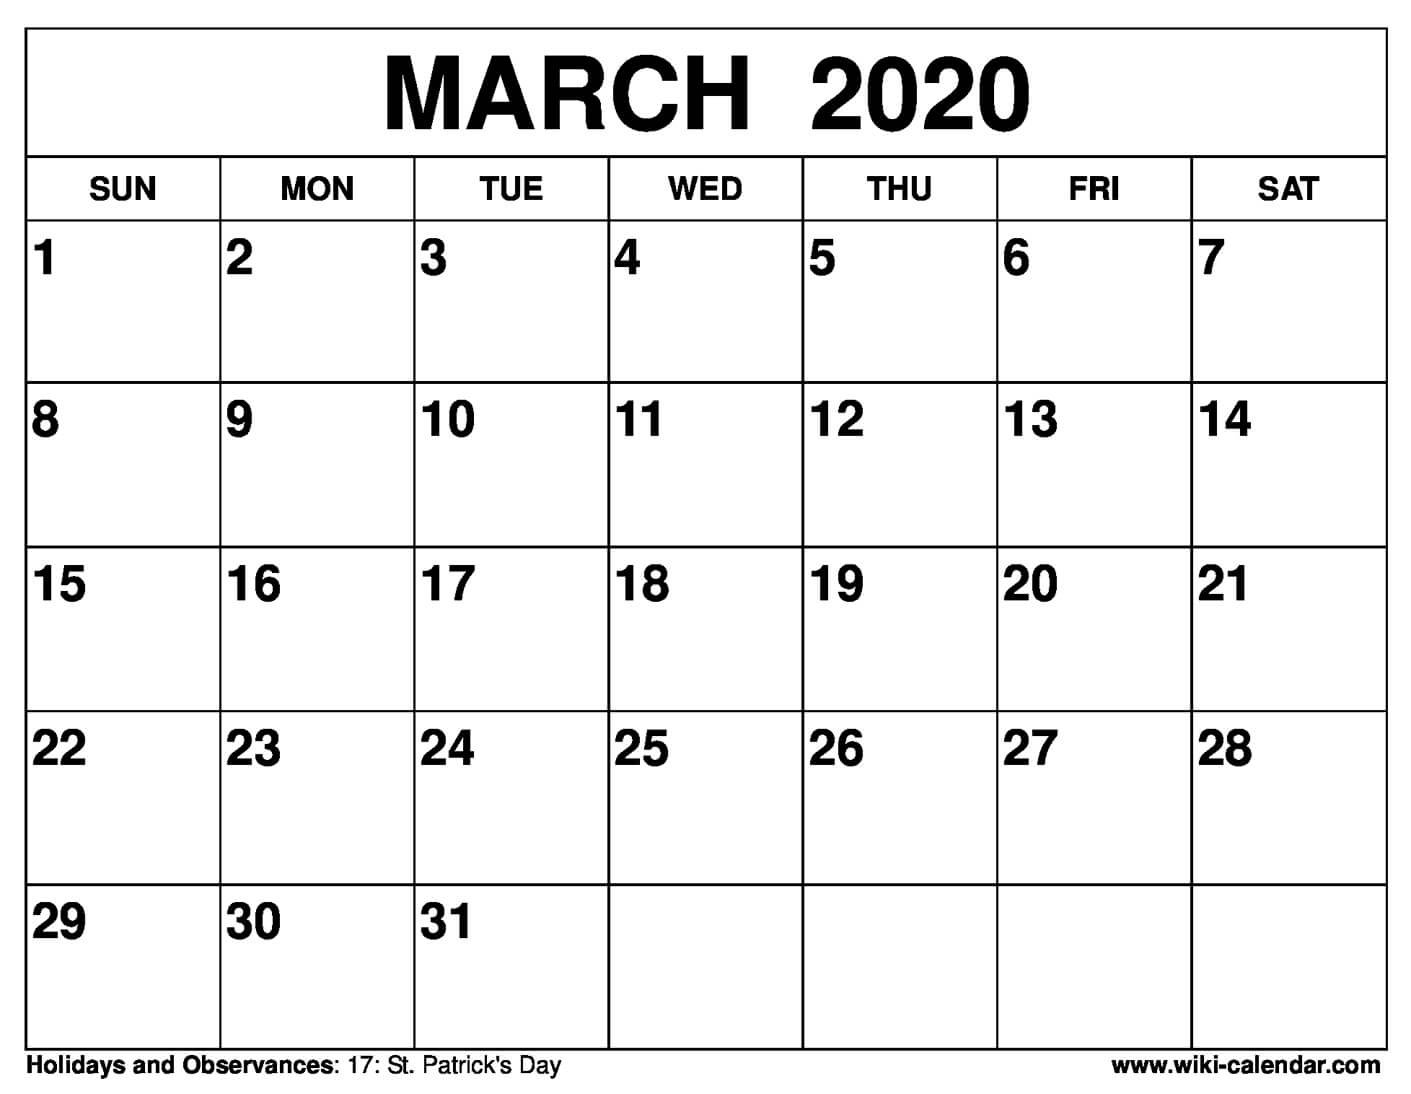 Free Printable March 2020 Calendars I Need A Calendar I Can Edit And Print Out Free